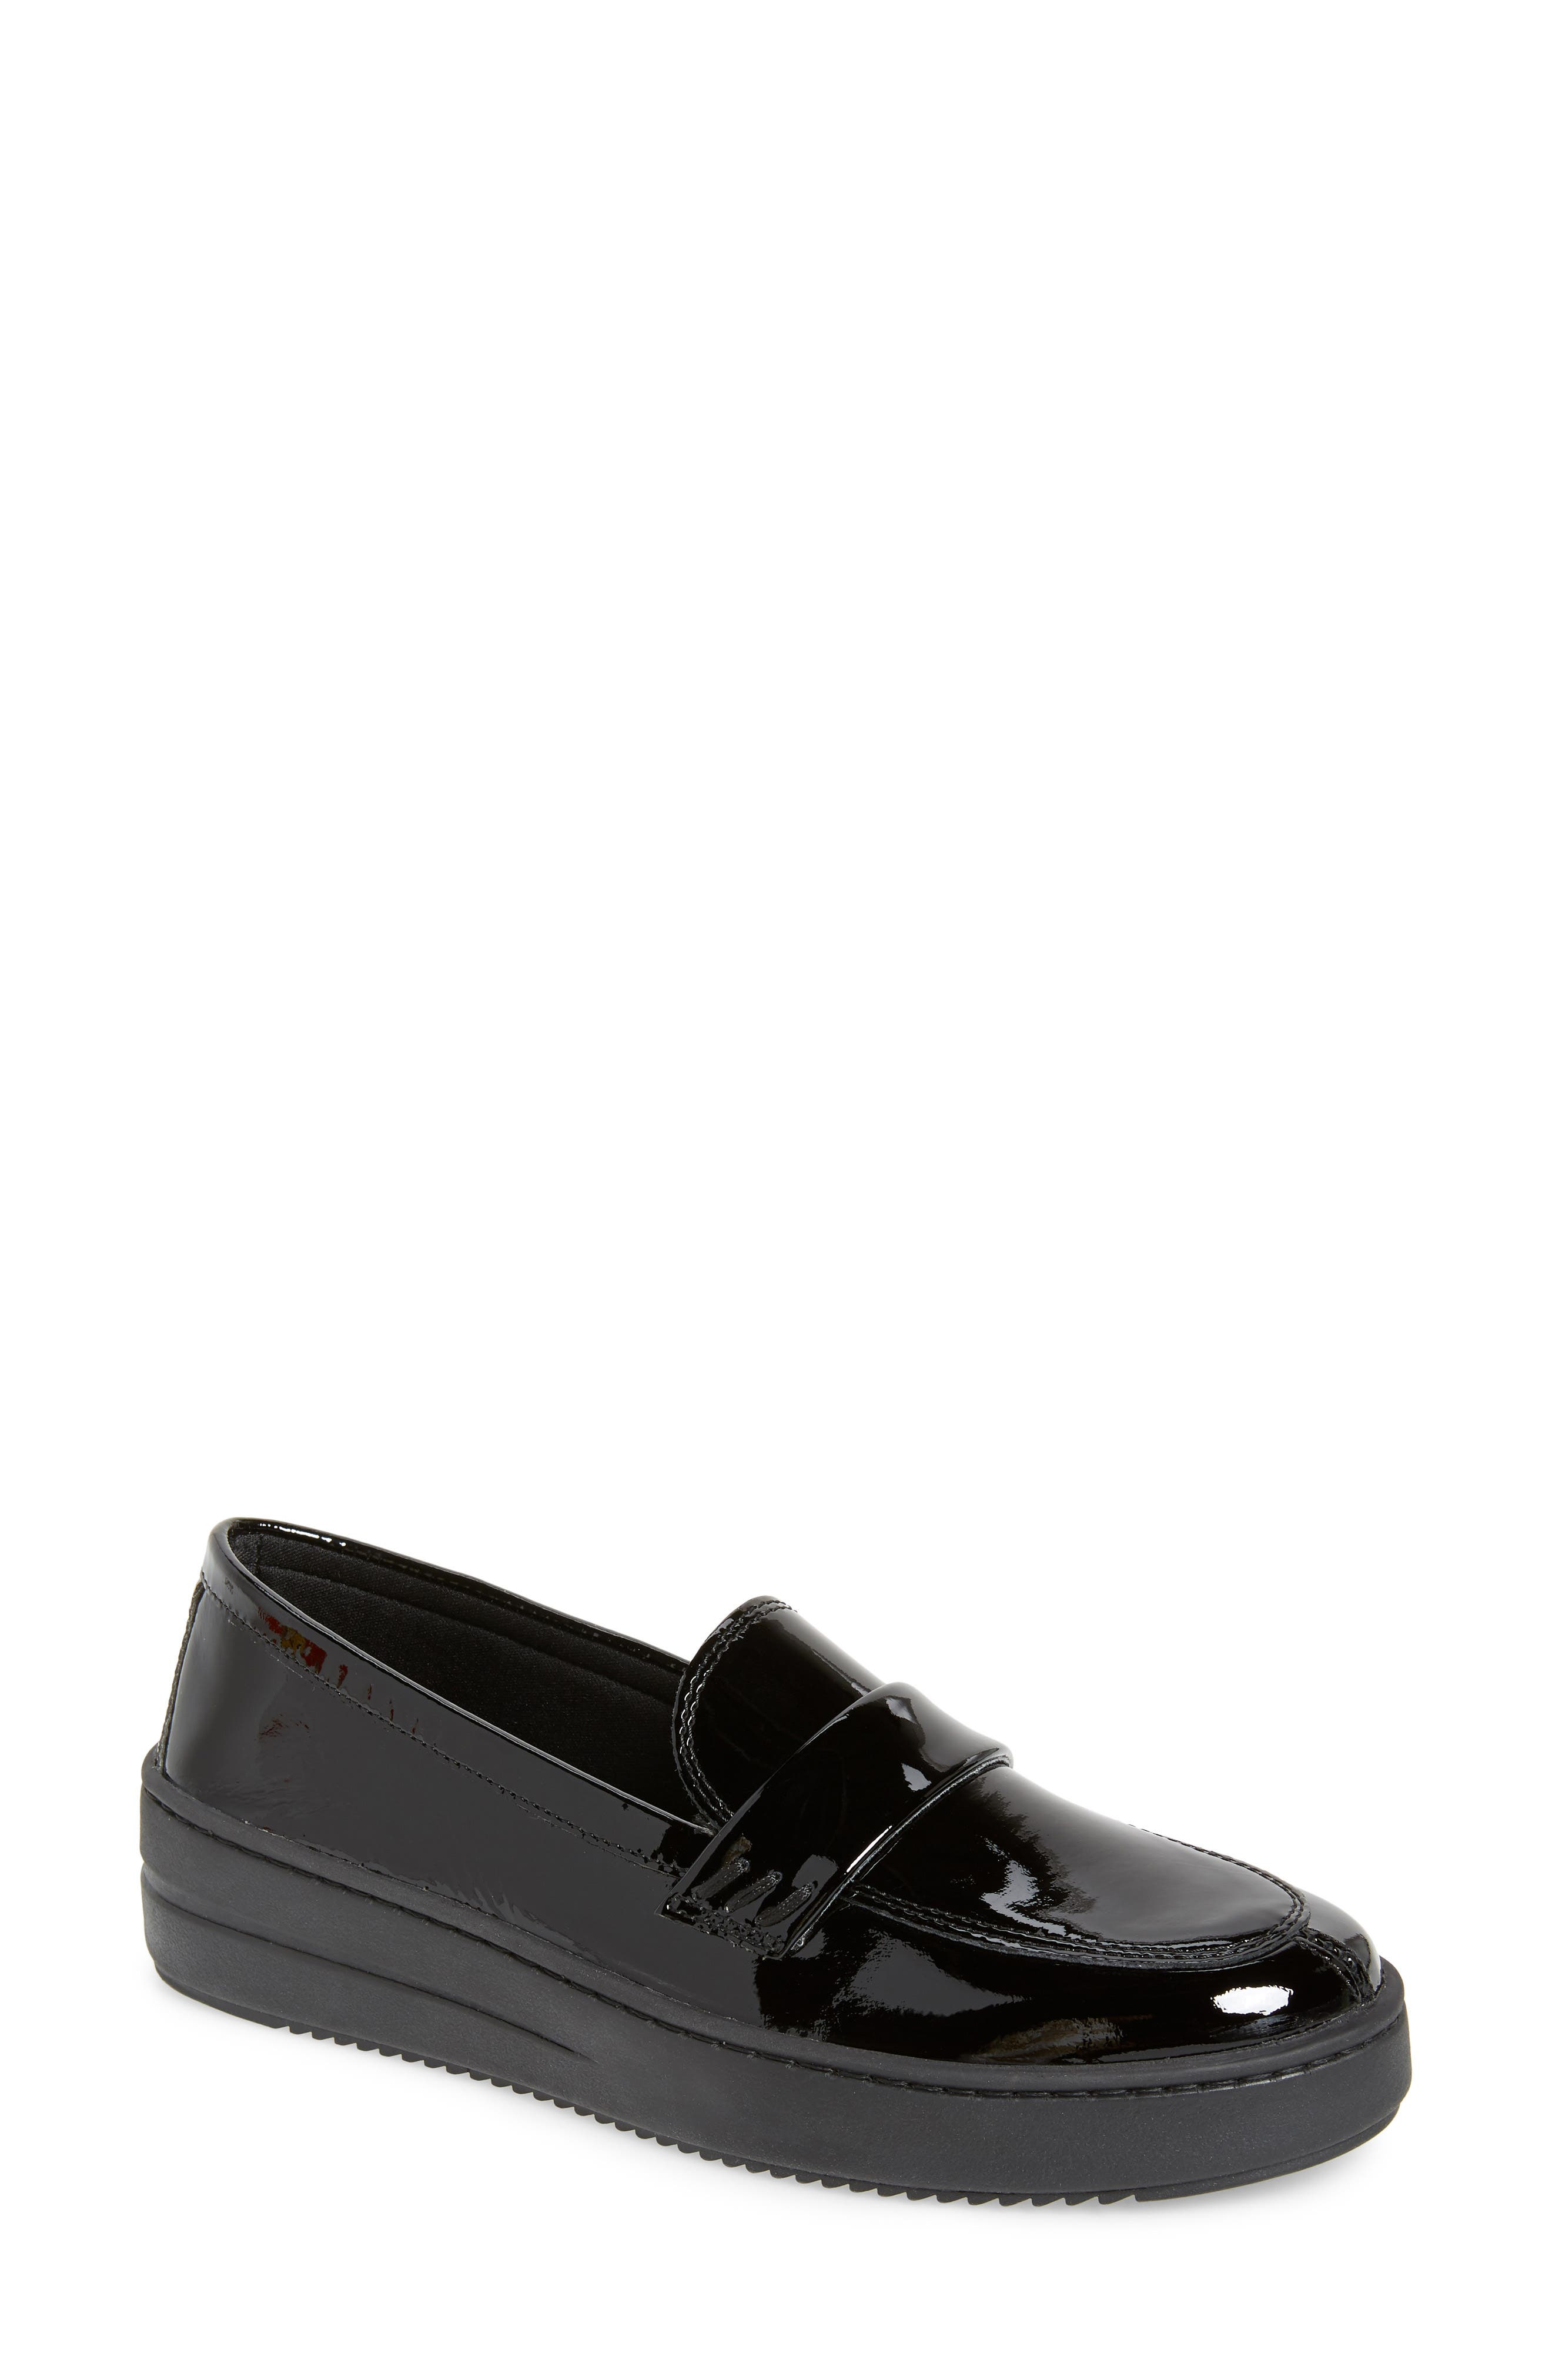 THE FLEXX No Loaf N Loafer, Main, color, BLACK PATENT LEATHER